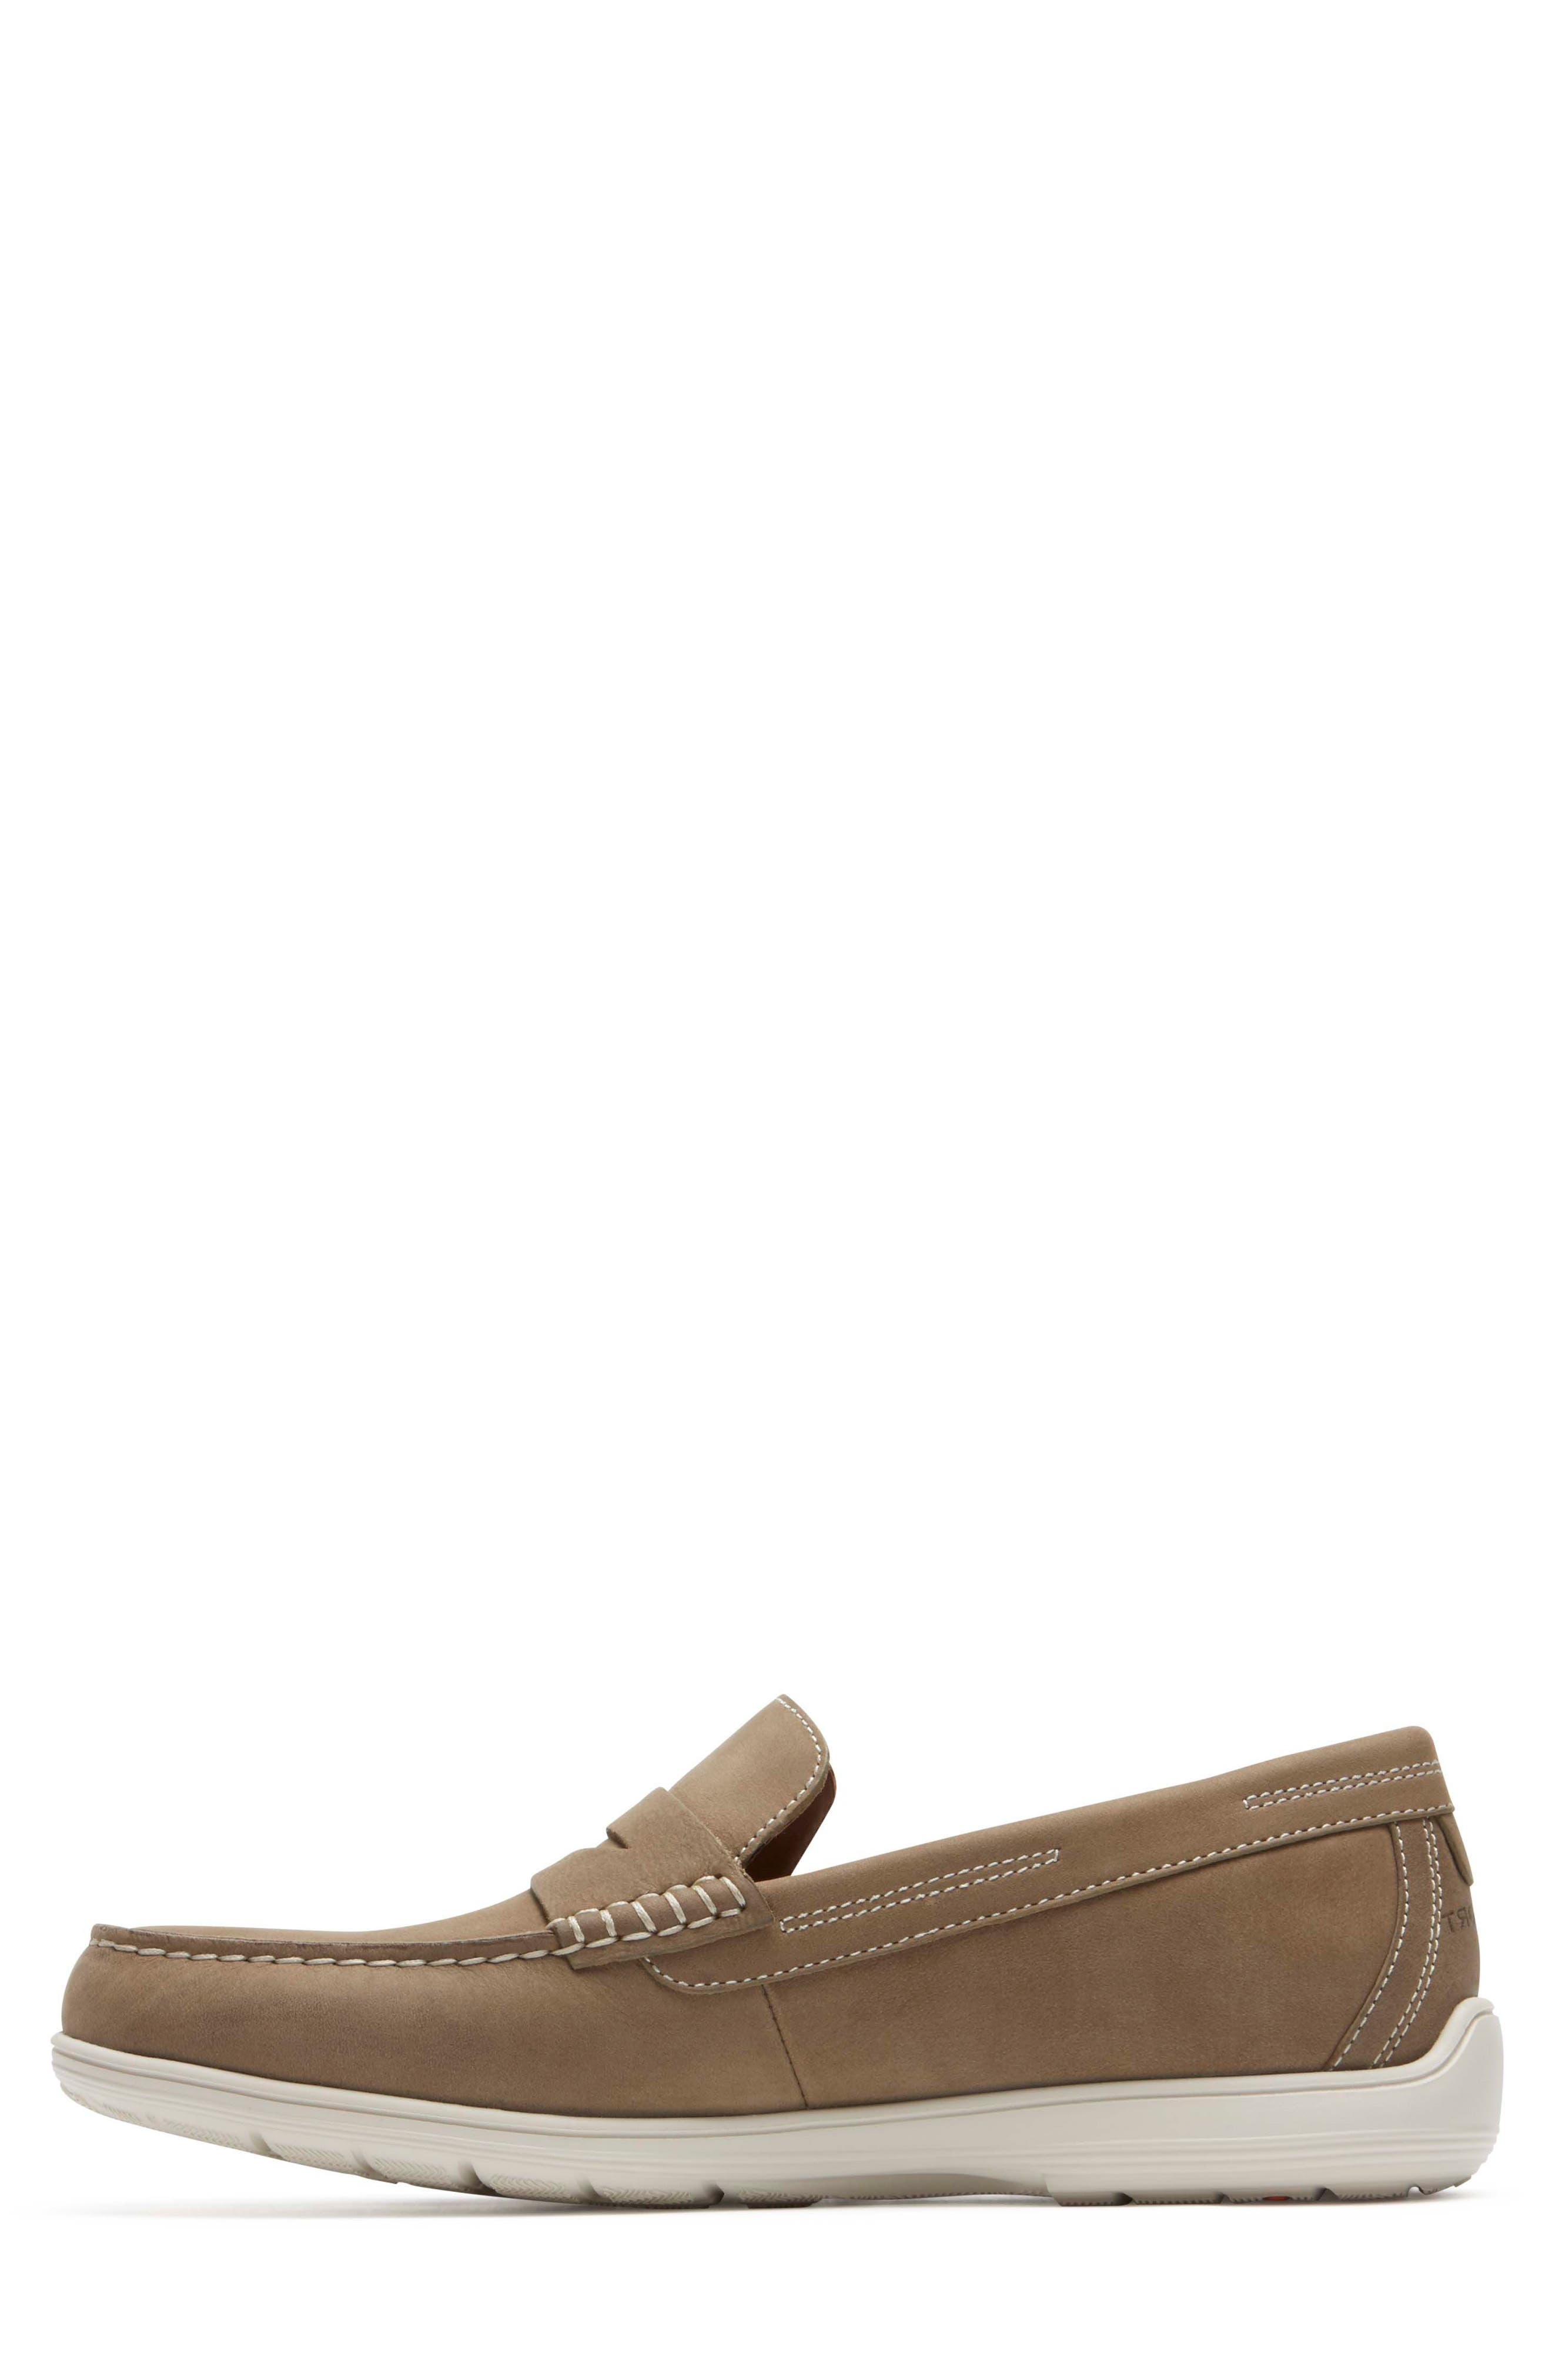 Alternate Image 2  - Rockport Total Motion Penny Loafer (Men)